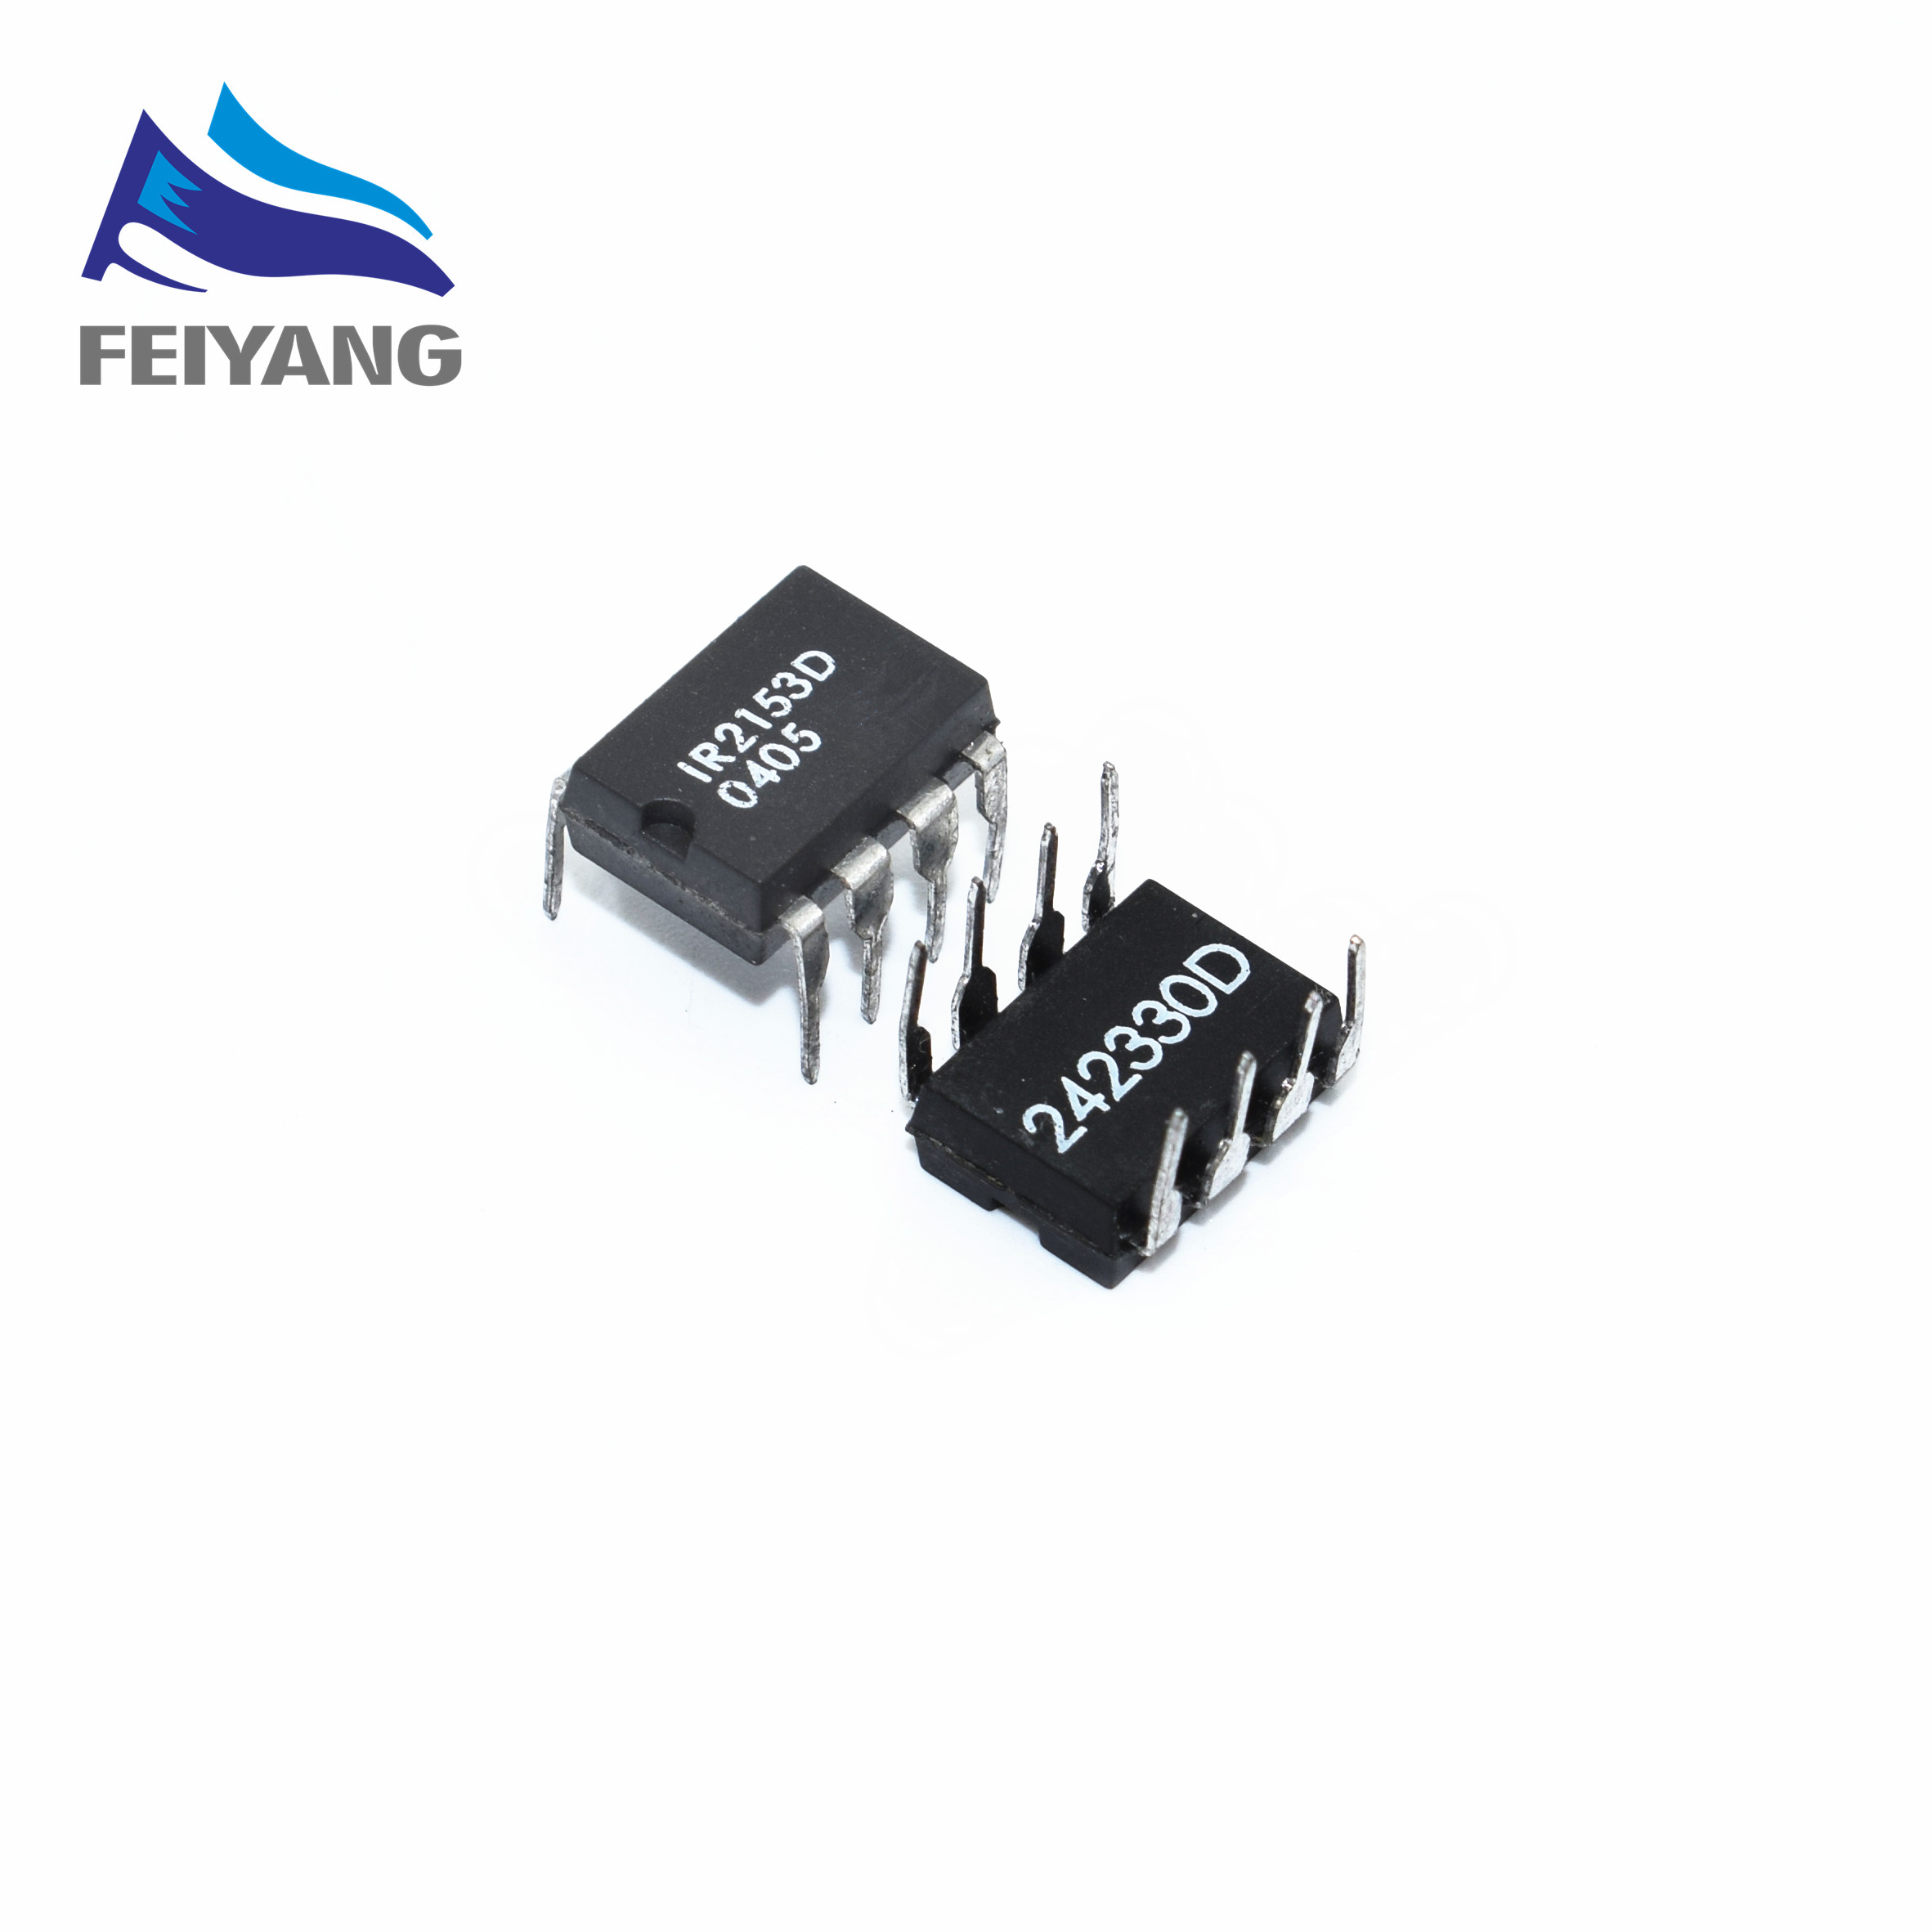 US $3 16 14% OFF|10PCS IR2153D IR2153 DIP8 NEW IC-in Integrated Circuits  from Electronic Components & Supplies on Aliexpress com | Alibaba Group